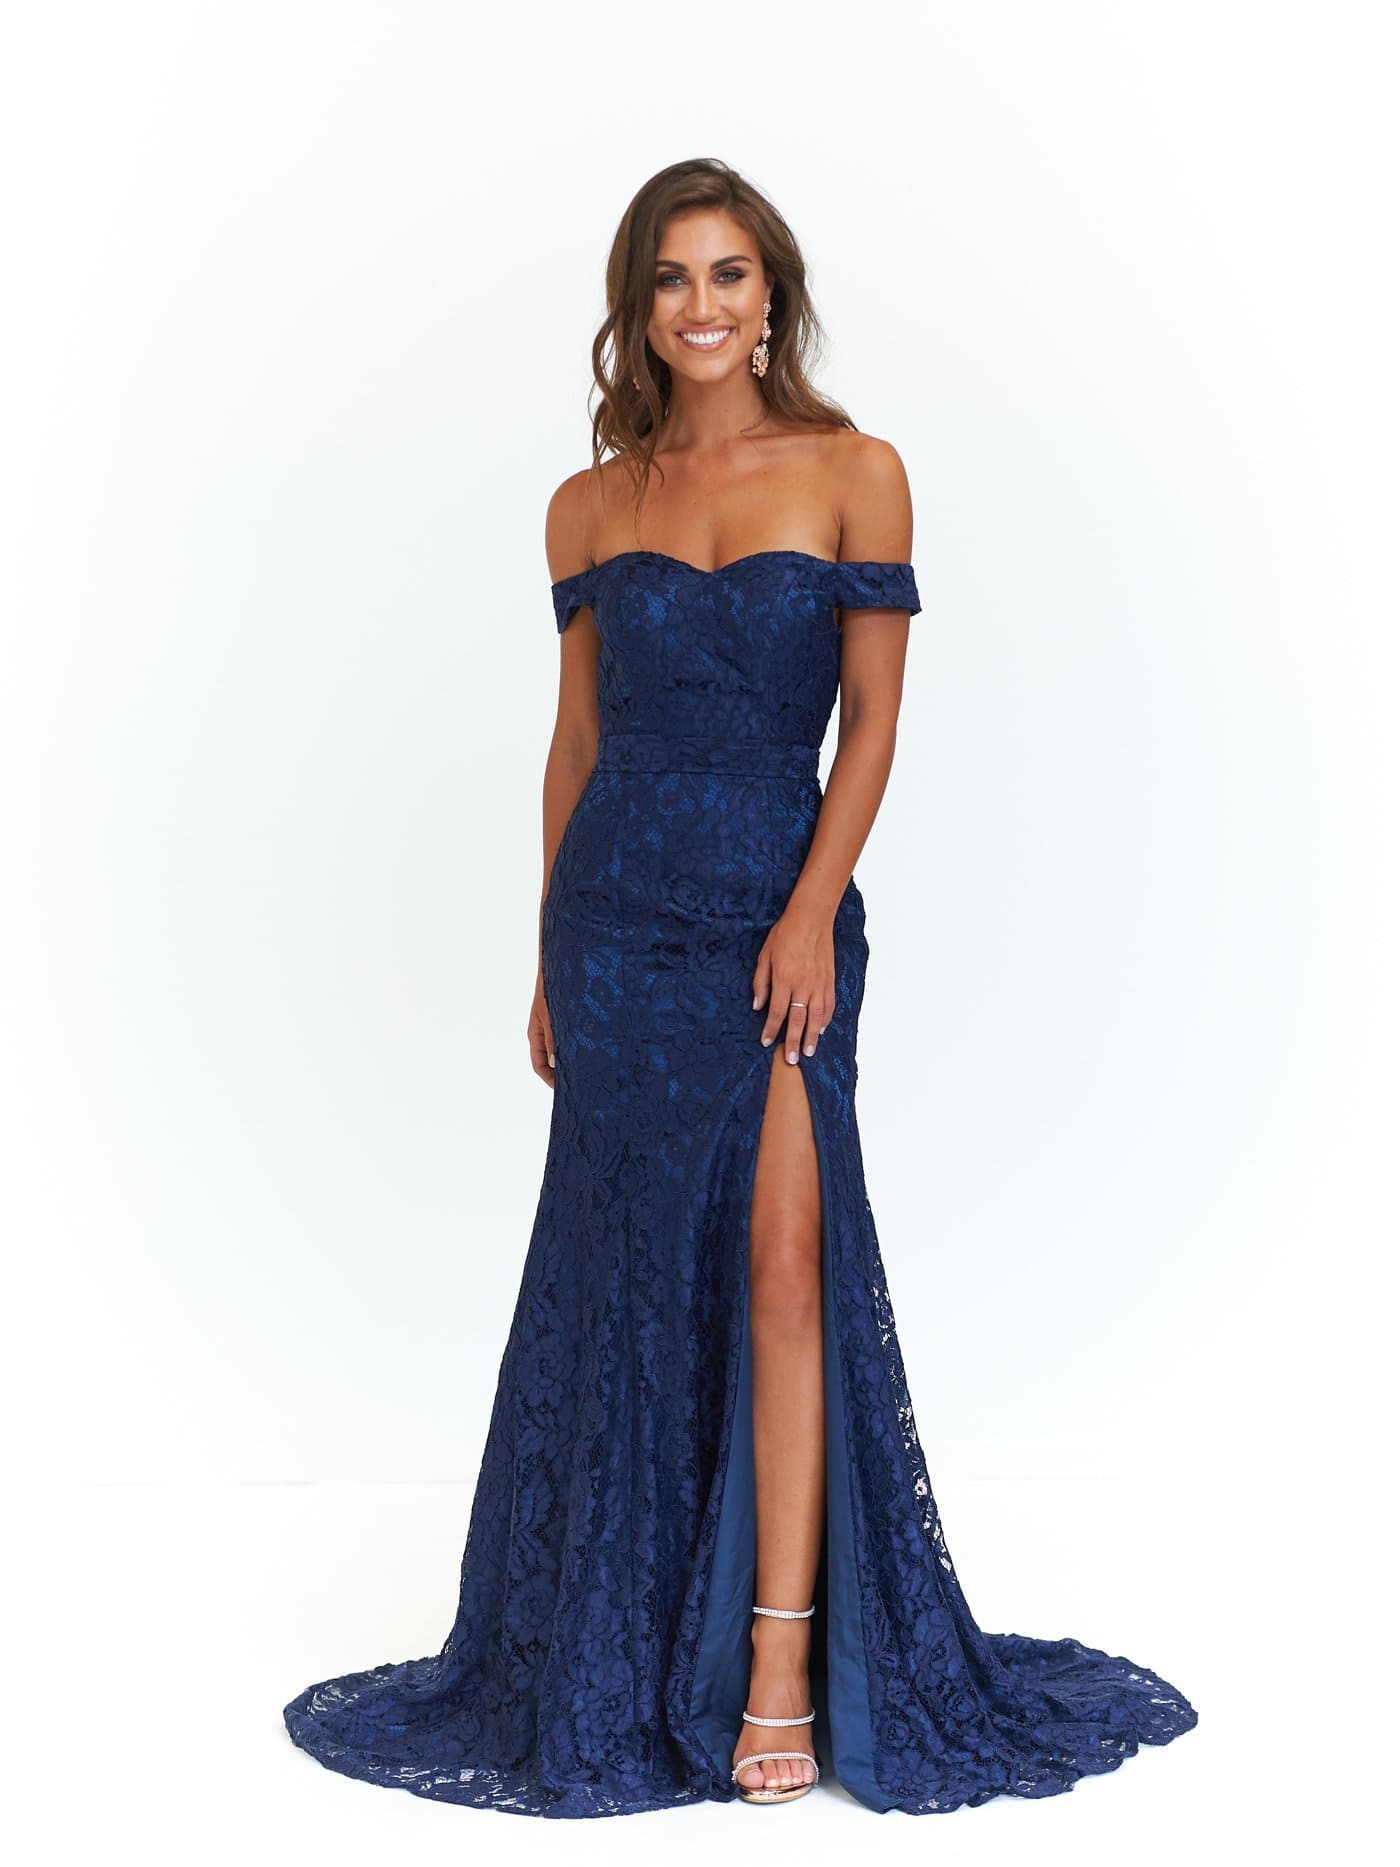 Leyla Formal Dress - Navy Off-Shoulder Lace Split Full Length Gown